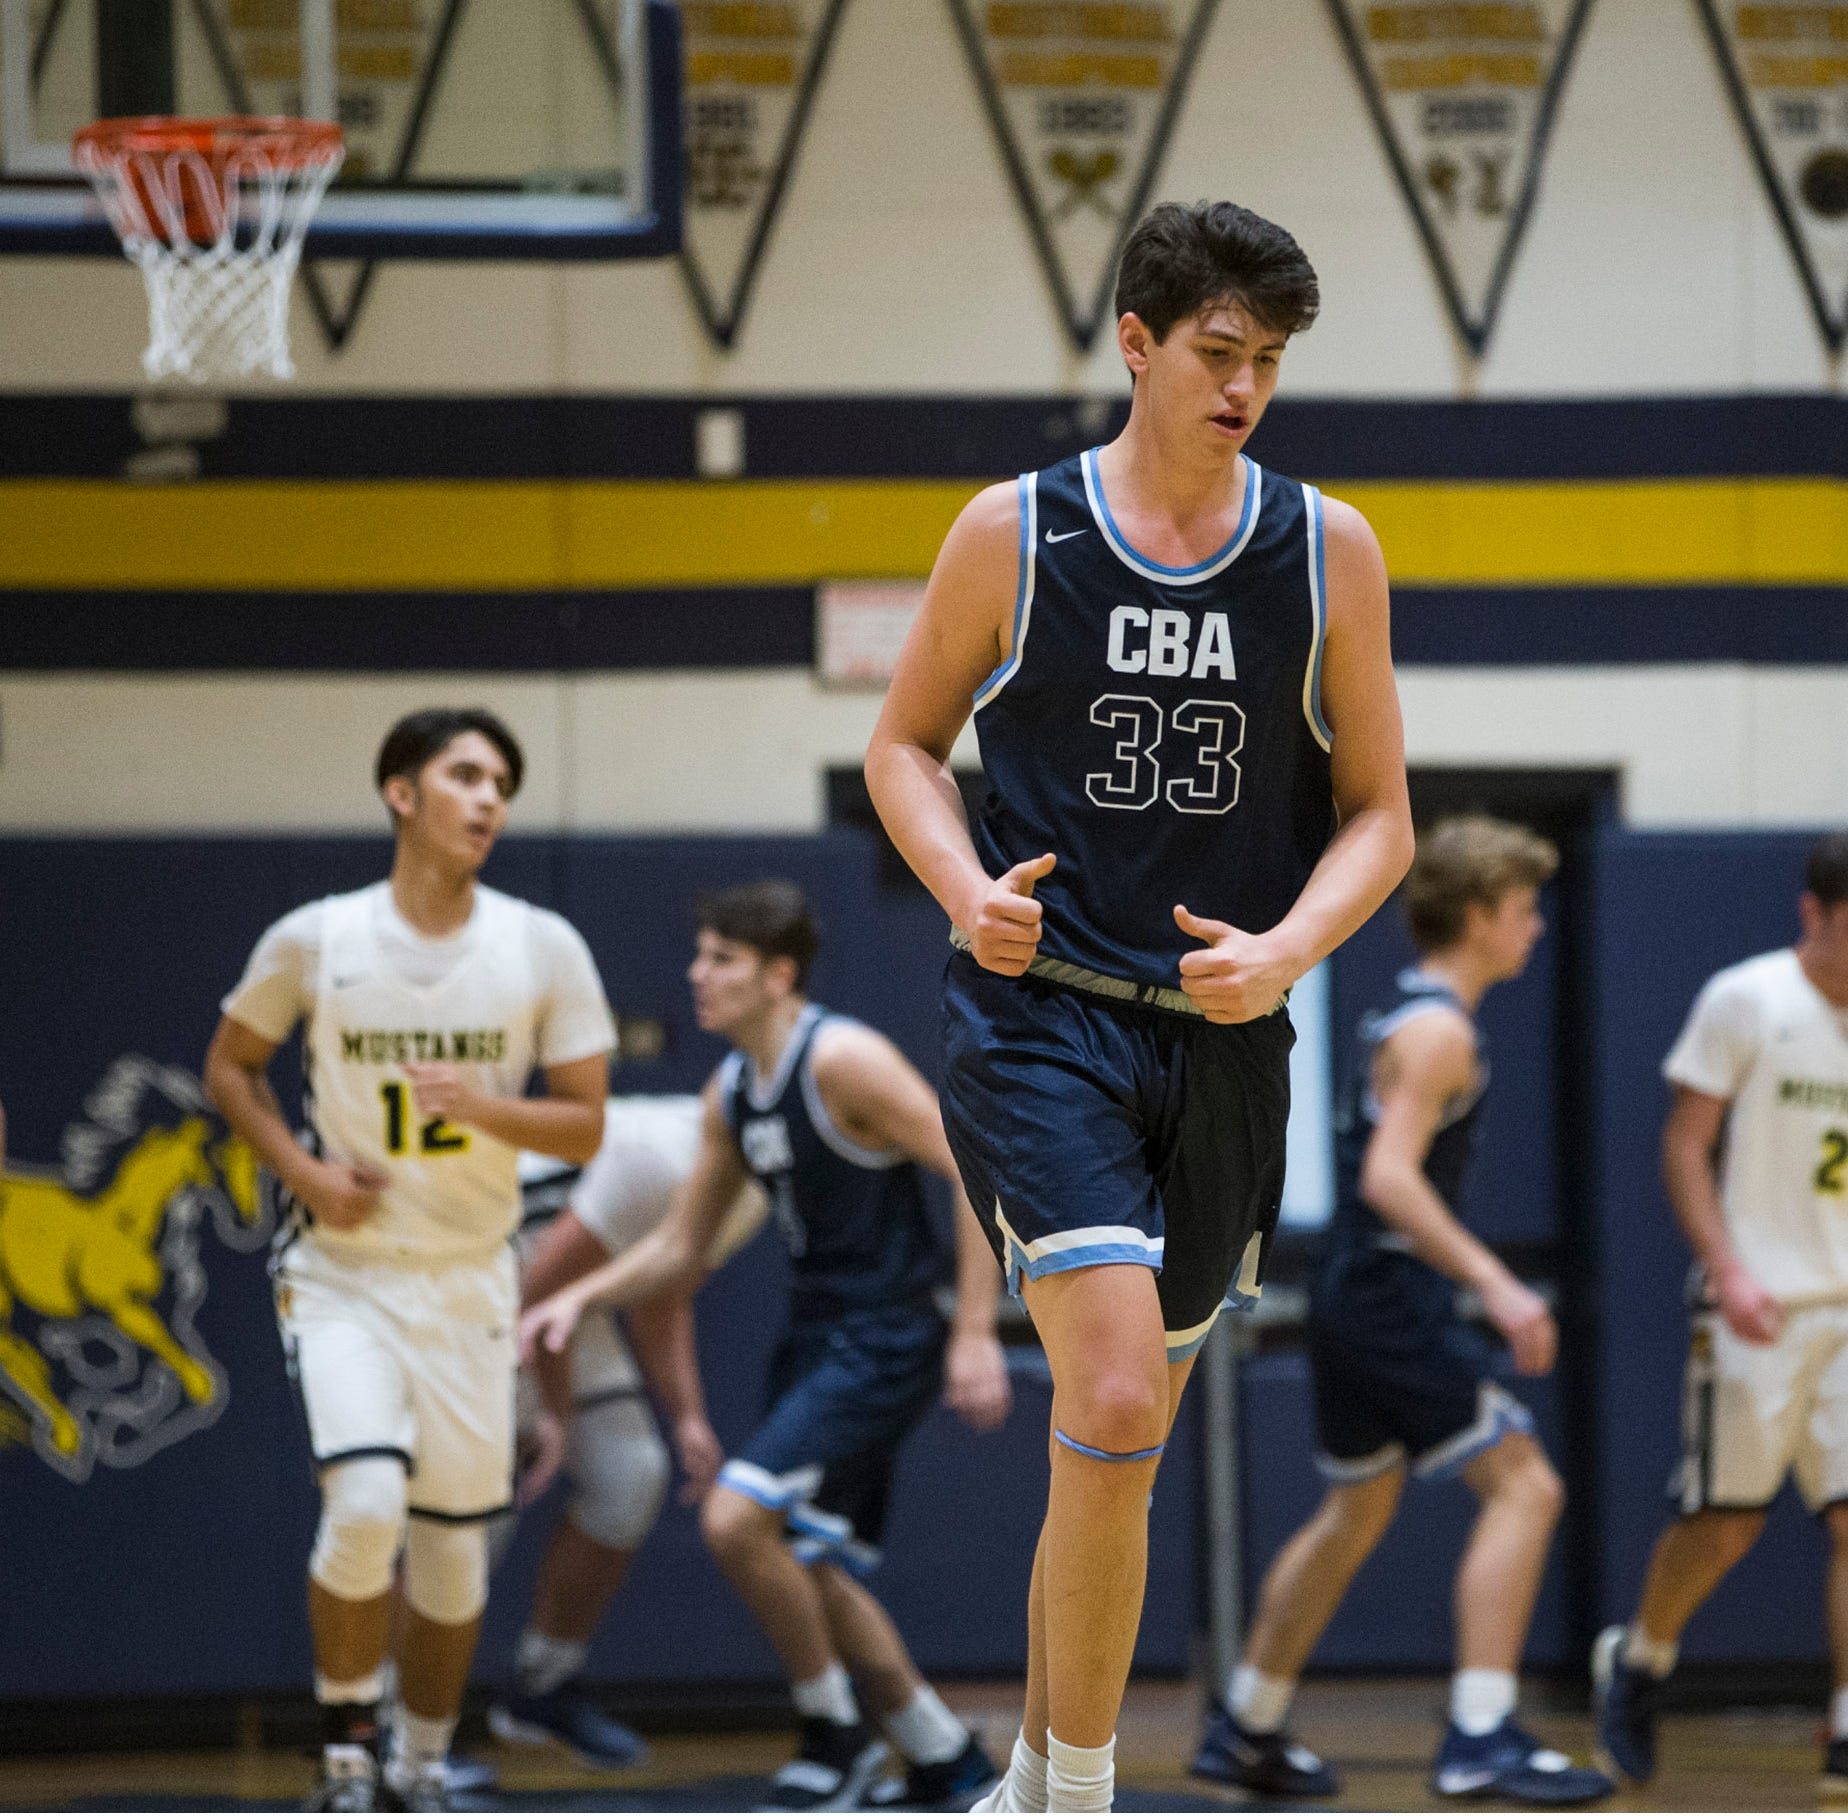 NJ boys hoops: CBA cruises past Marlboro on opening day